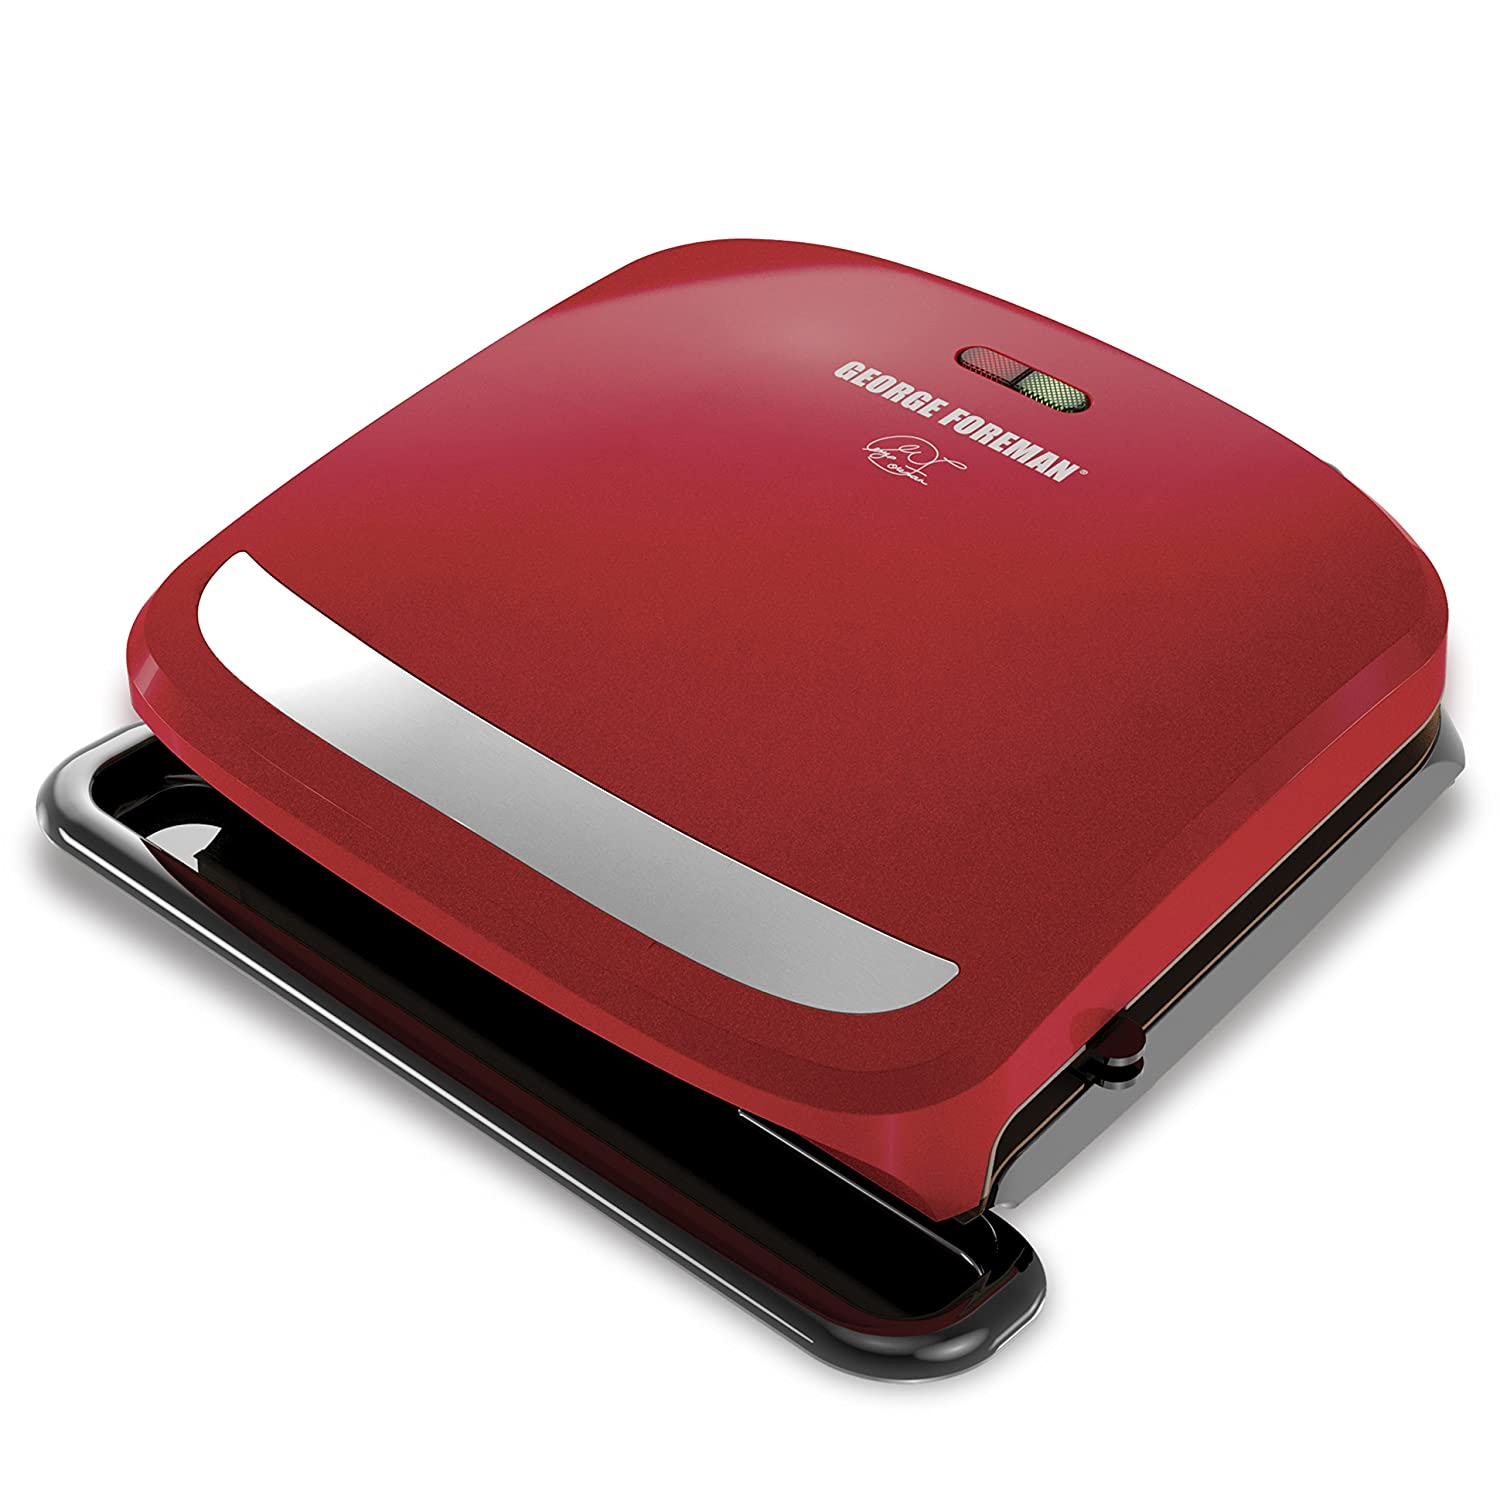 George Foreman 4-Serving Removable Plate Grill and Panini Press, Black, GRP360B GRP3060B